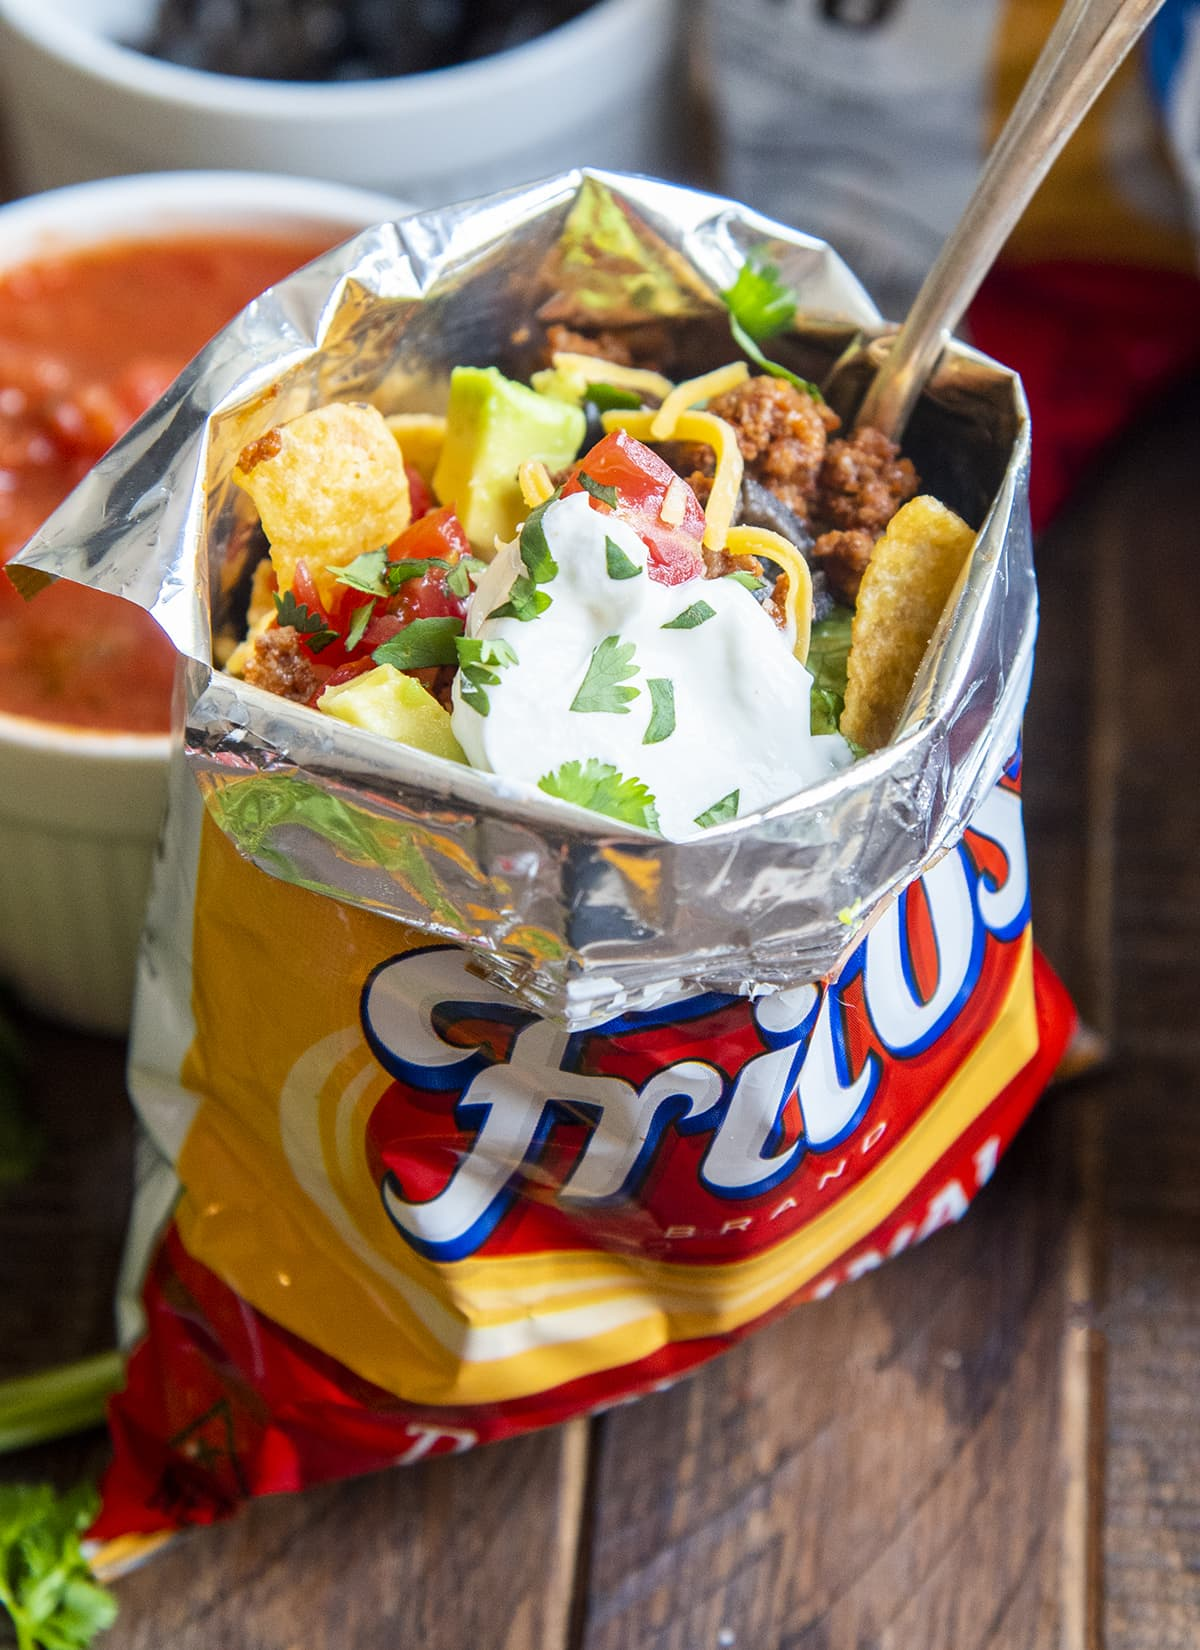 A walking taco in a frito bag with a fork in the bag.